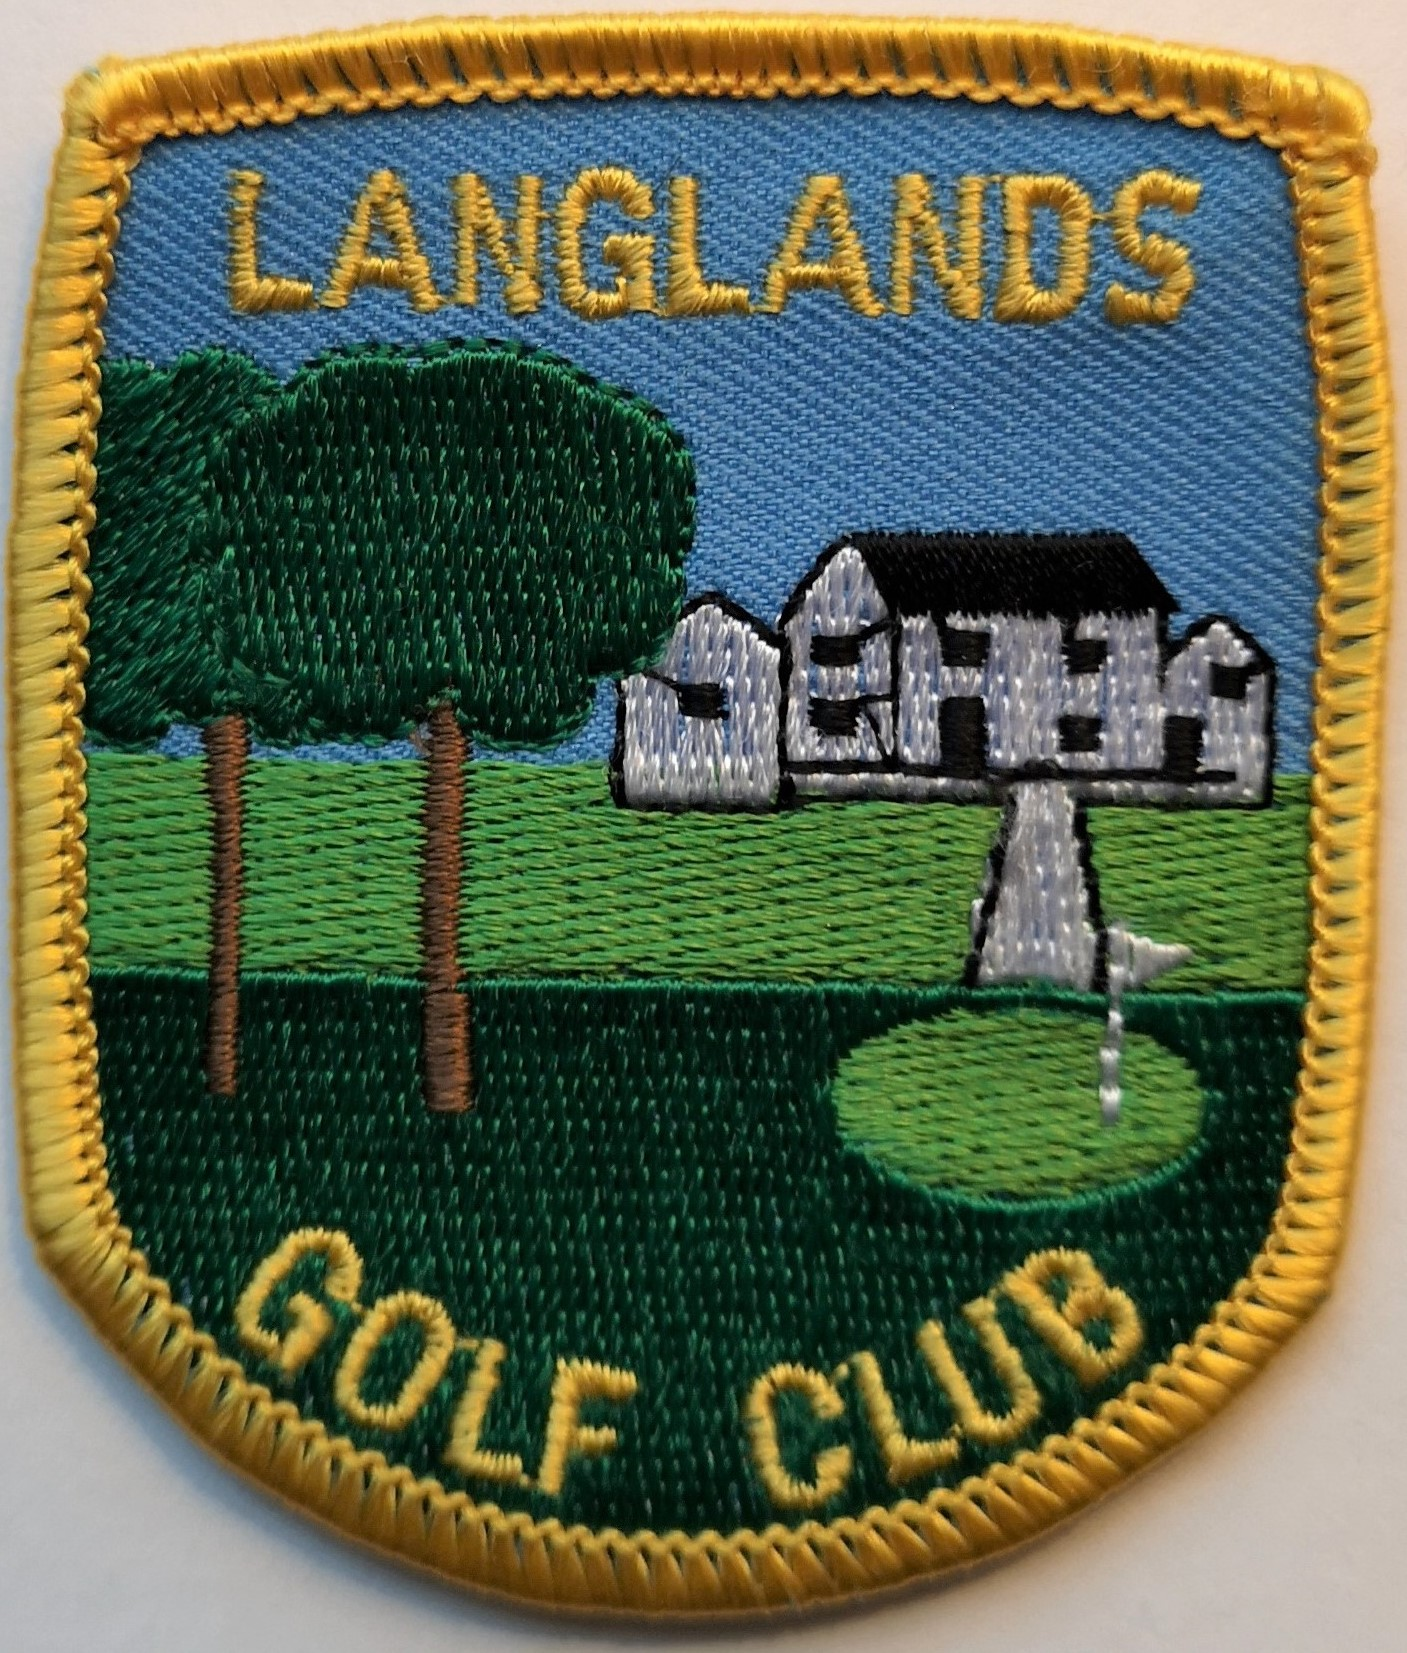 Langlands Golf Club